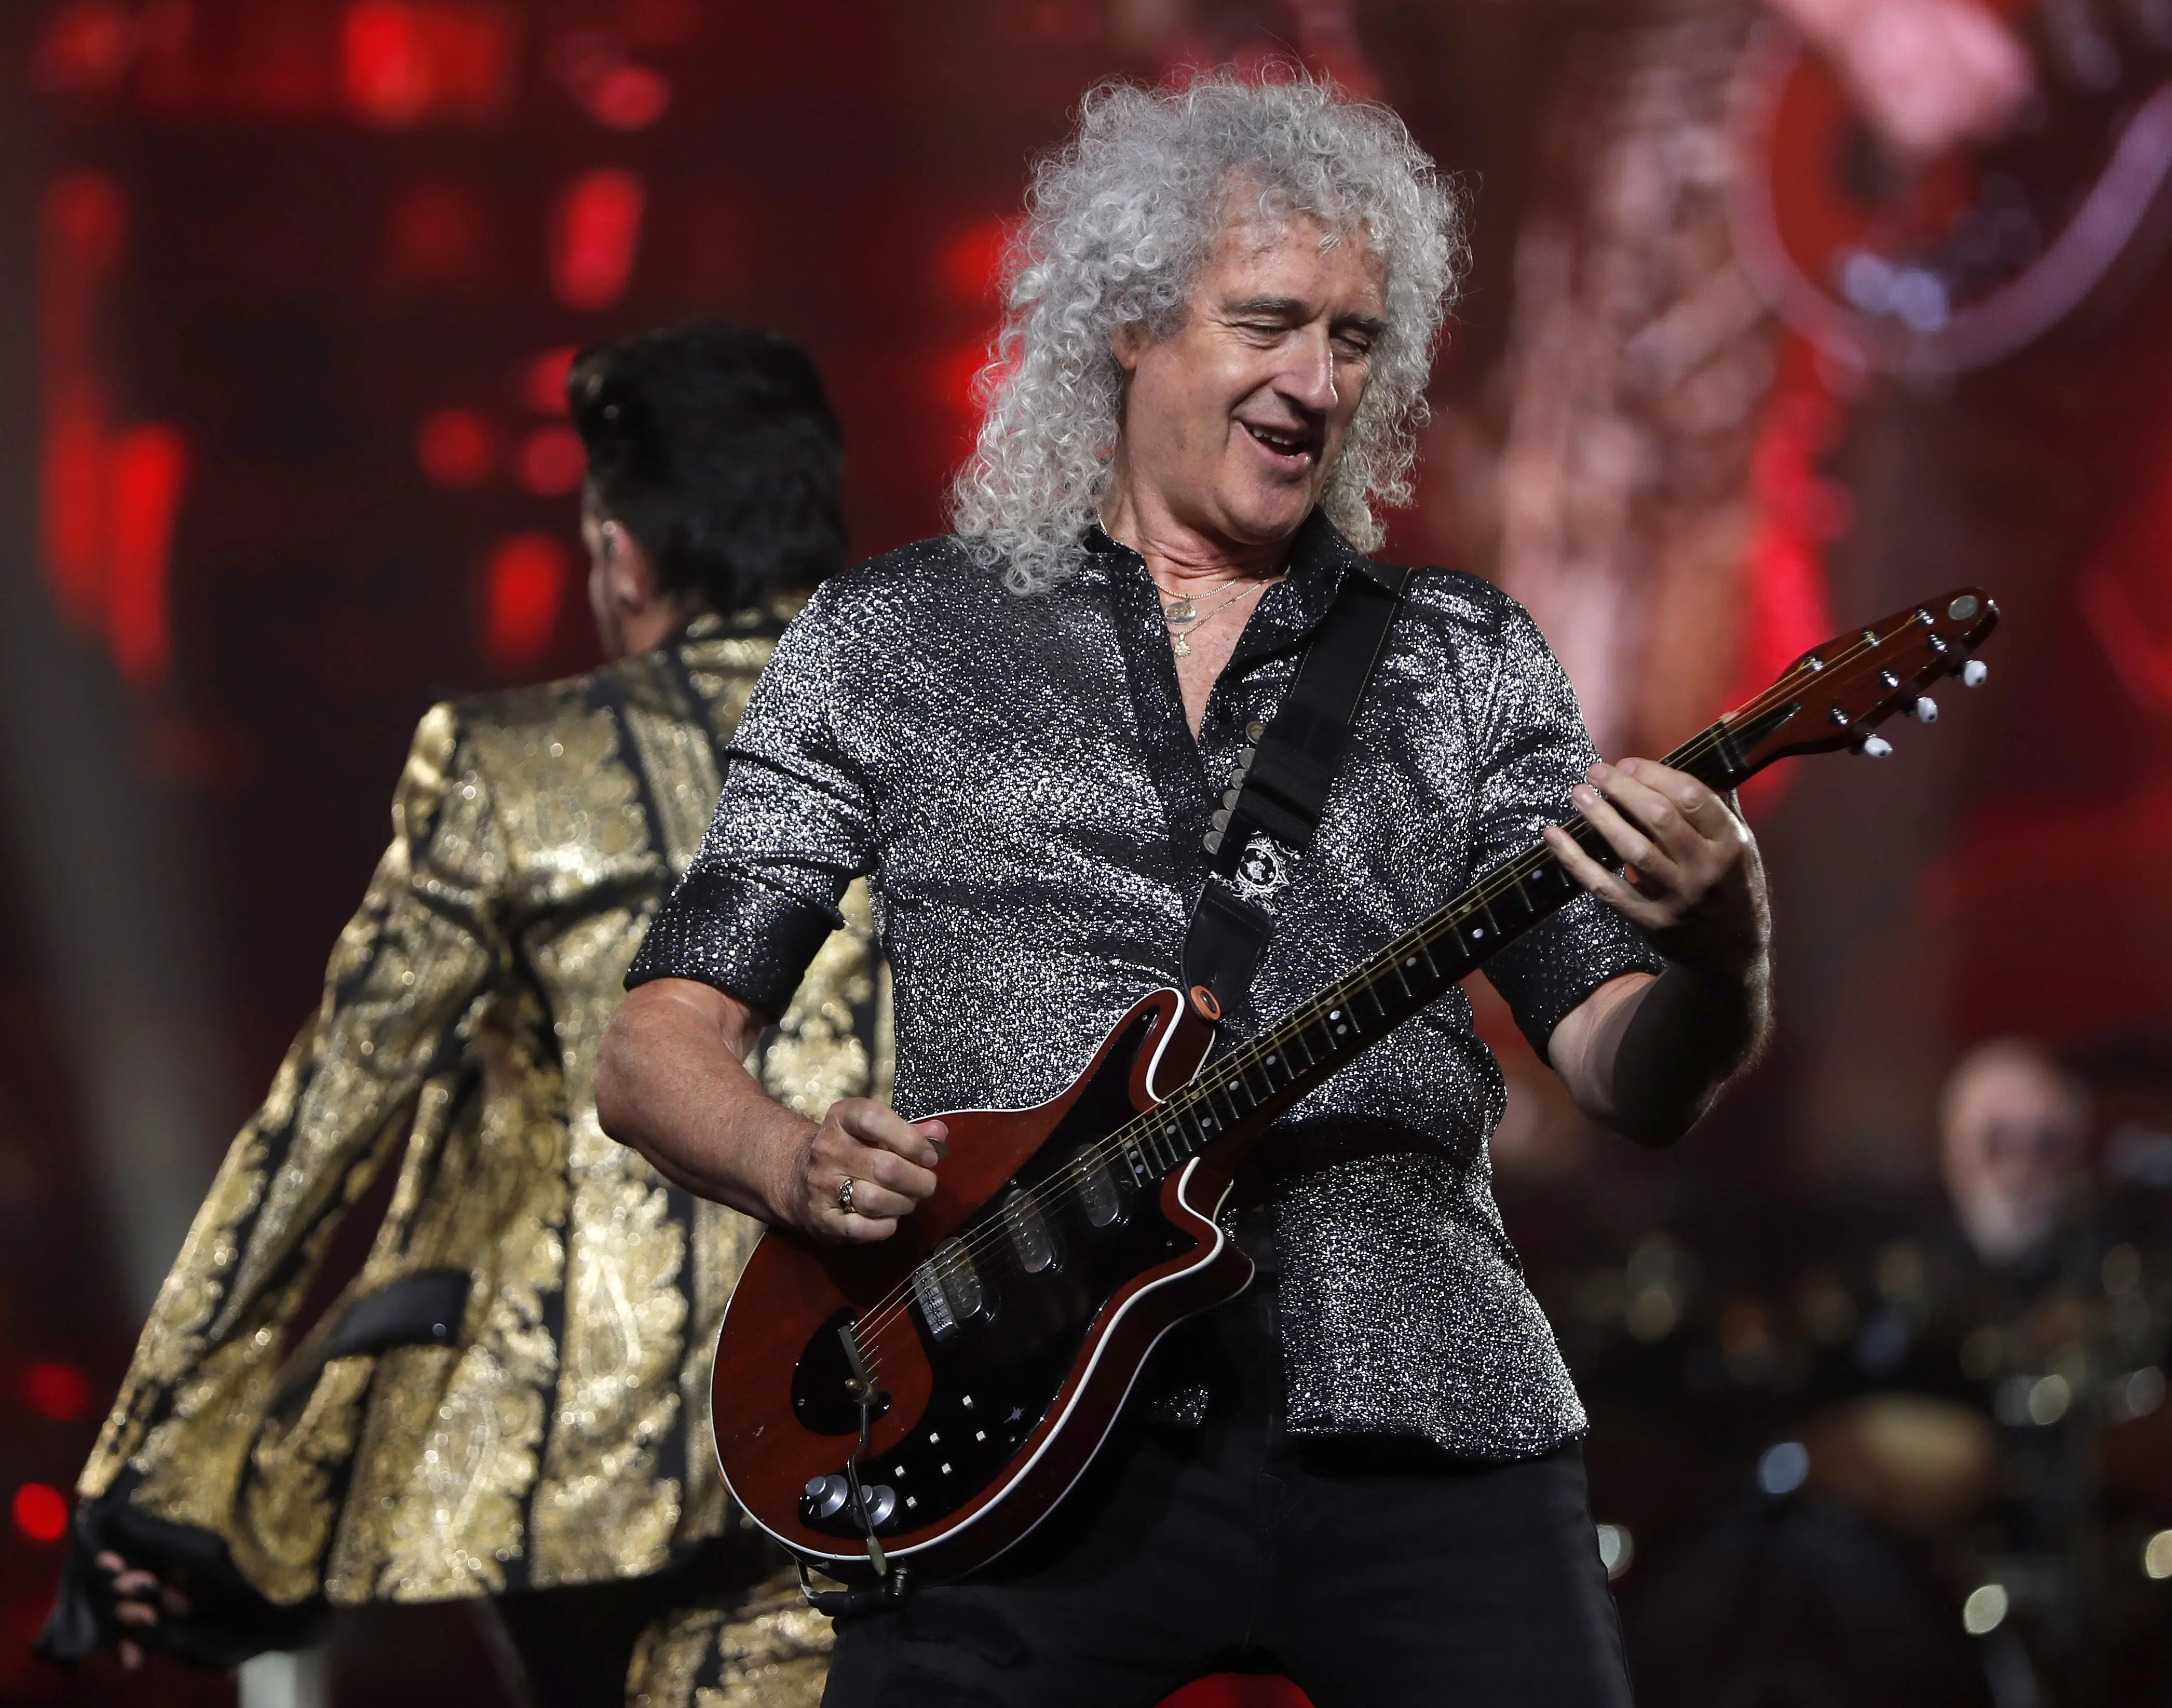 Brian May reveals he had a heart attack